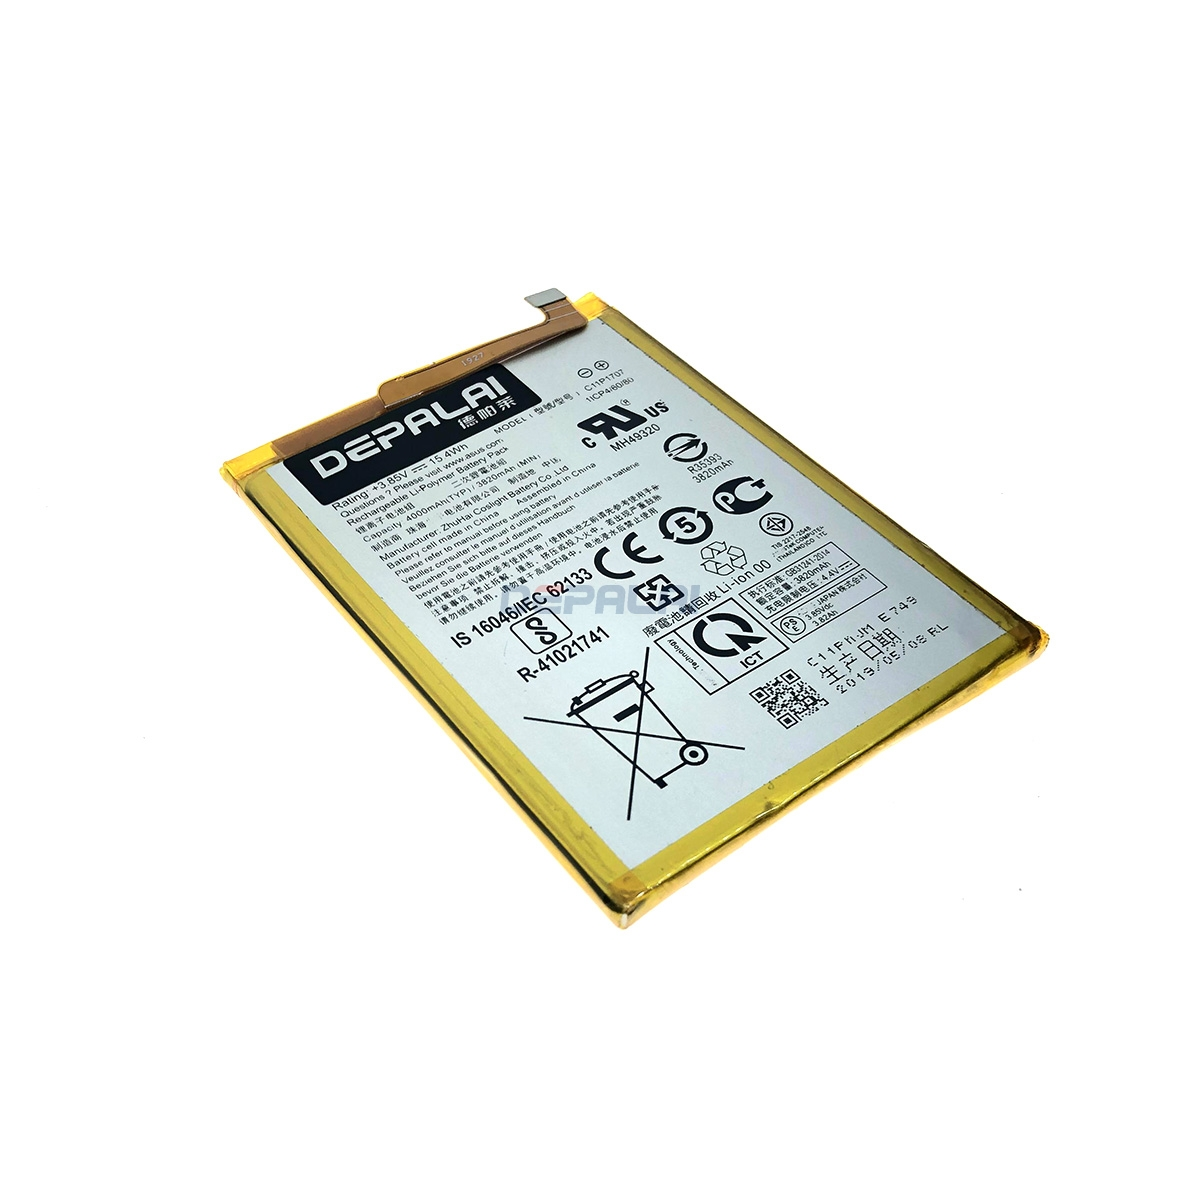 C11P1707 Phone Battery For ASUS Zenfone Max M1 ZB555KL X00PD 4040mAh High Capacity image